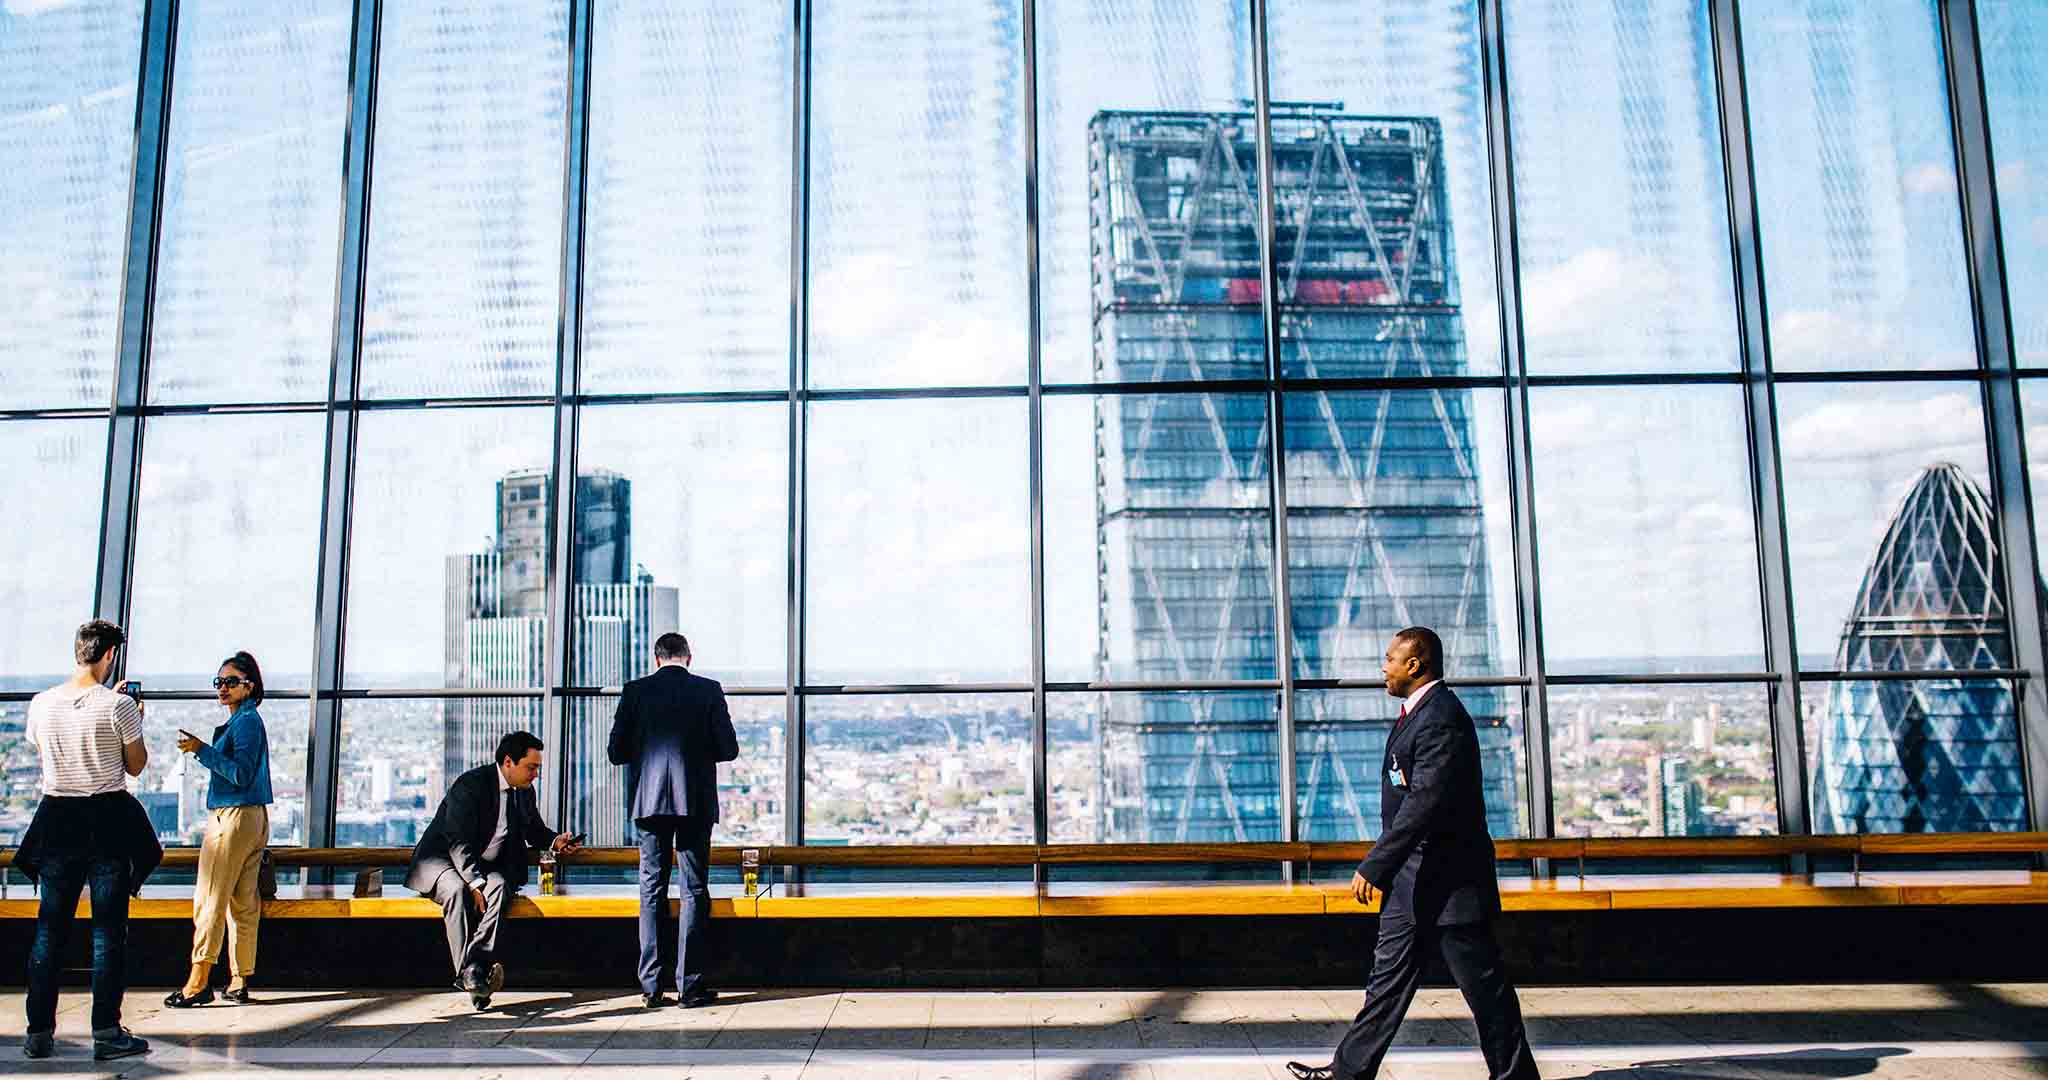 20 fenchurch street architecture buildings human stock photos